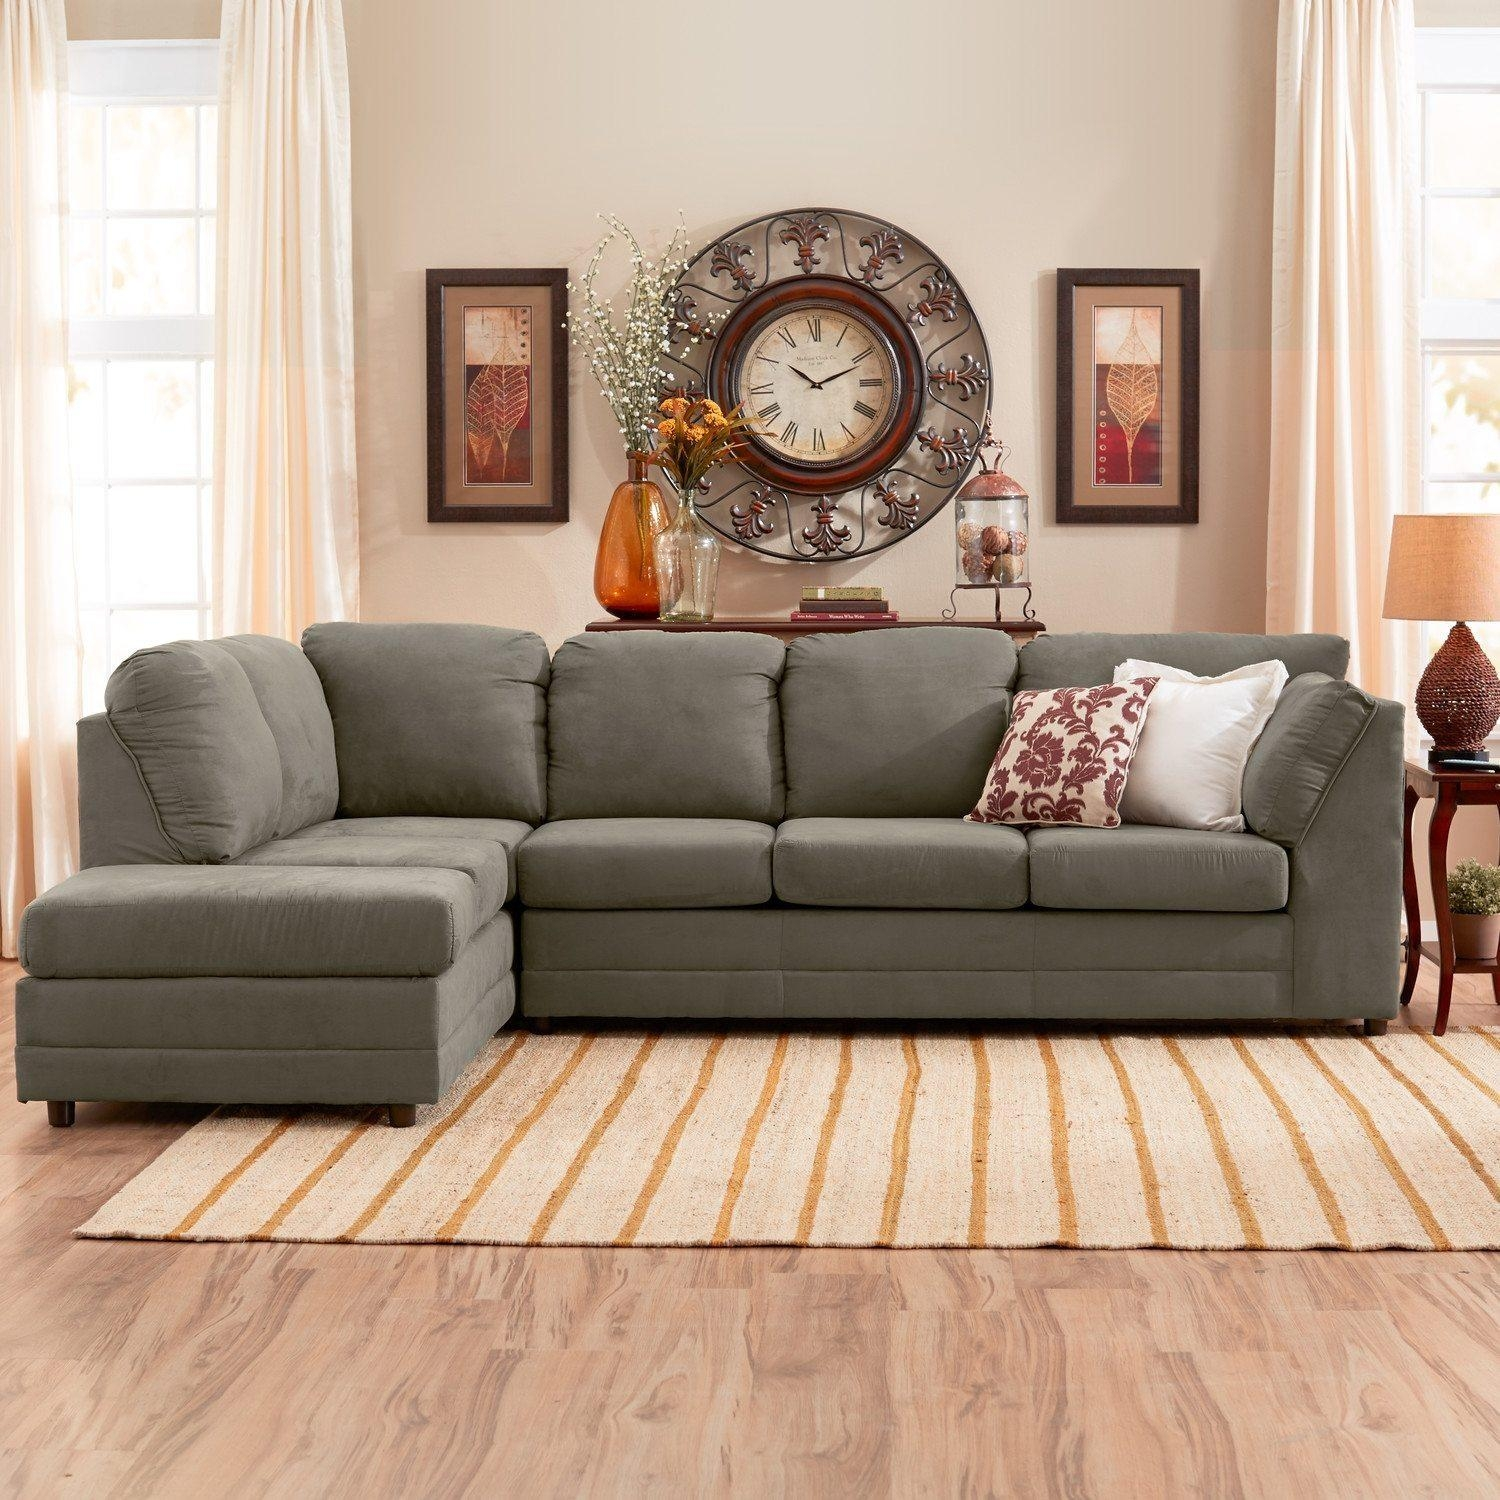 Small Scale Sectional Sofa With Concept Photo 12037 | Kengire Throughout Small Scale Sectionals (Image 12 of 20)